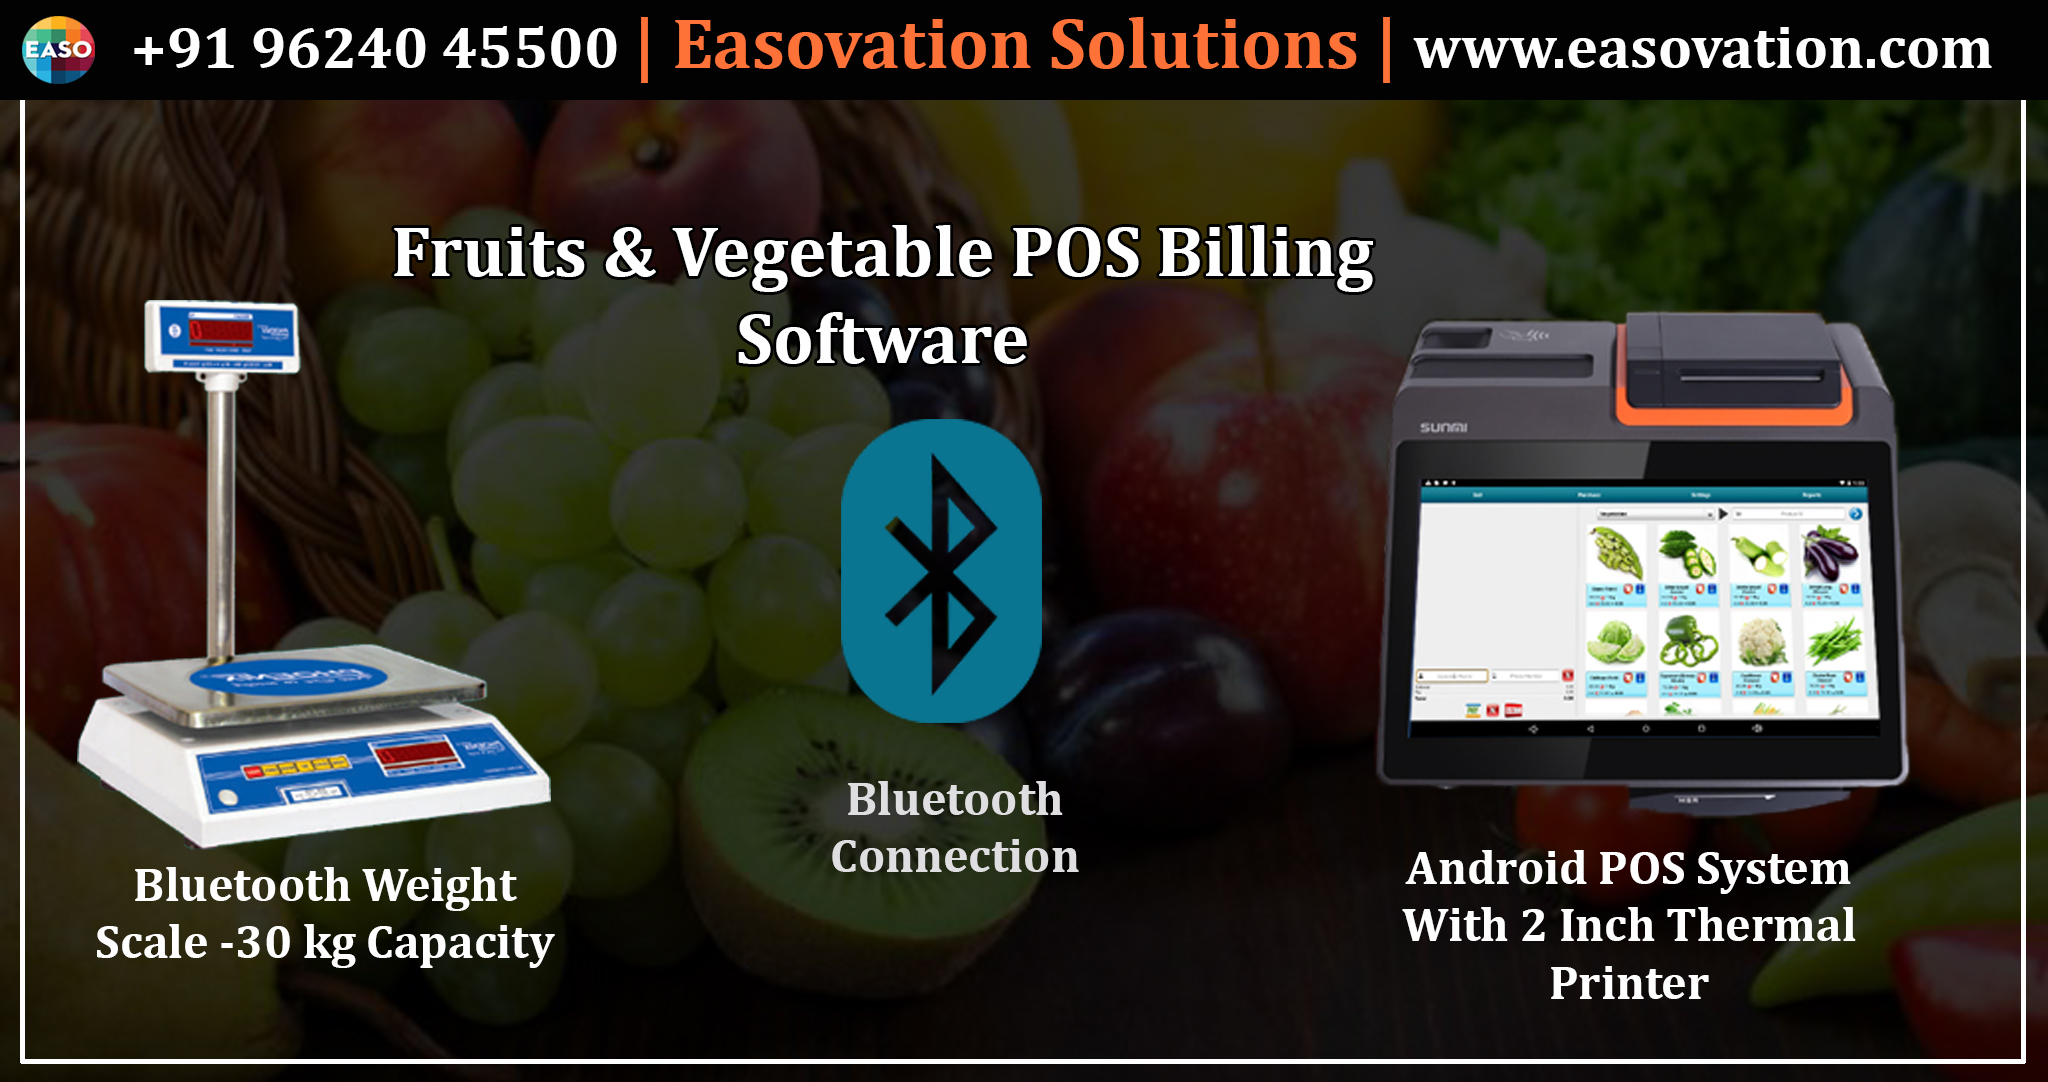 easovation-solutions-navrangpura-ahmedabad-barcode-scanner-dealers-x981b